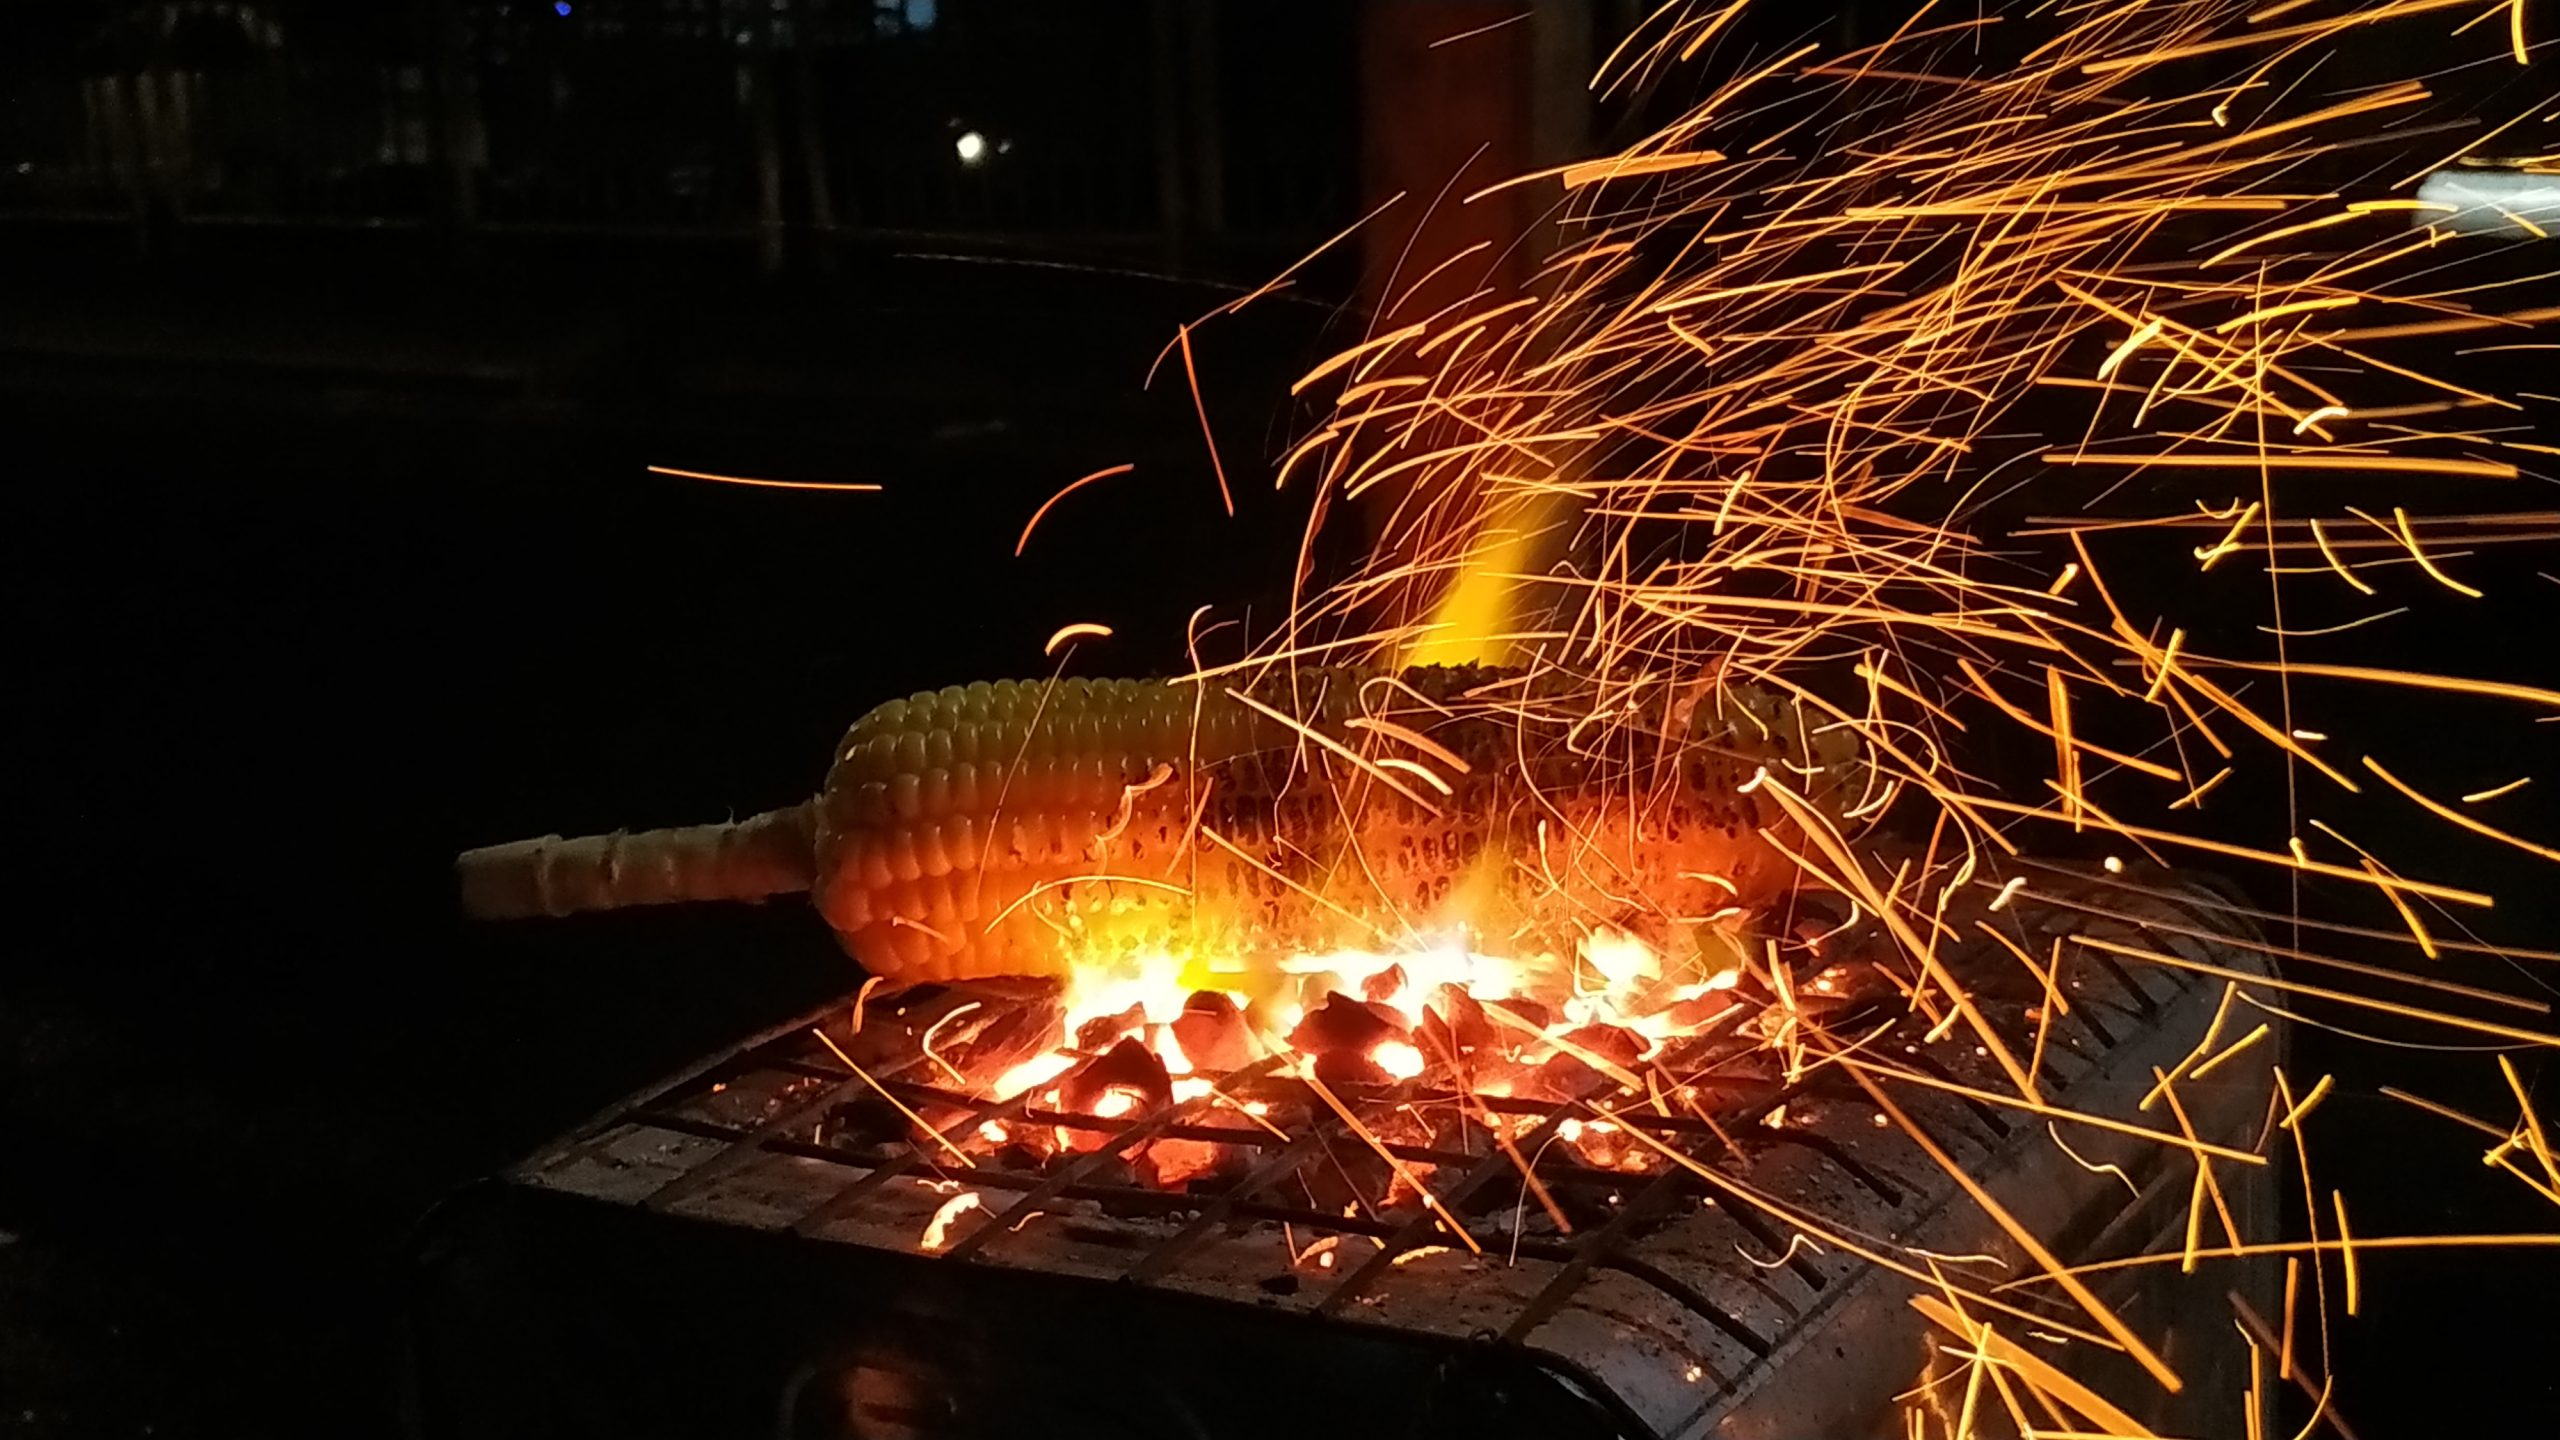 corn being roasted